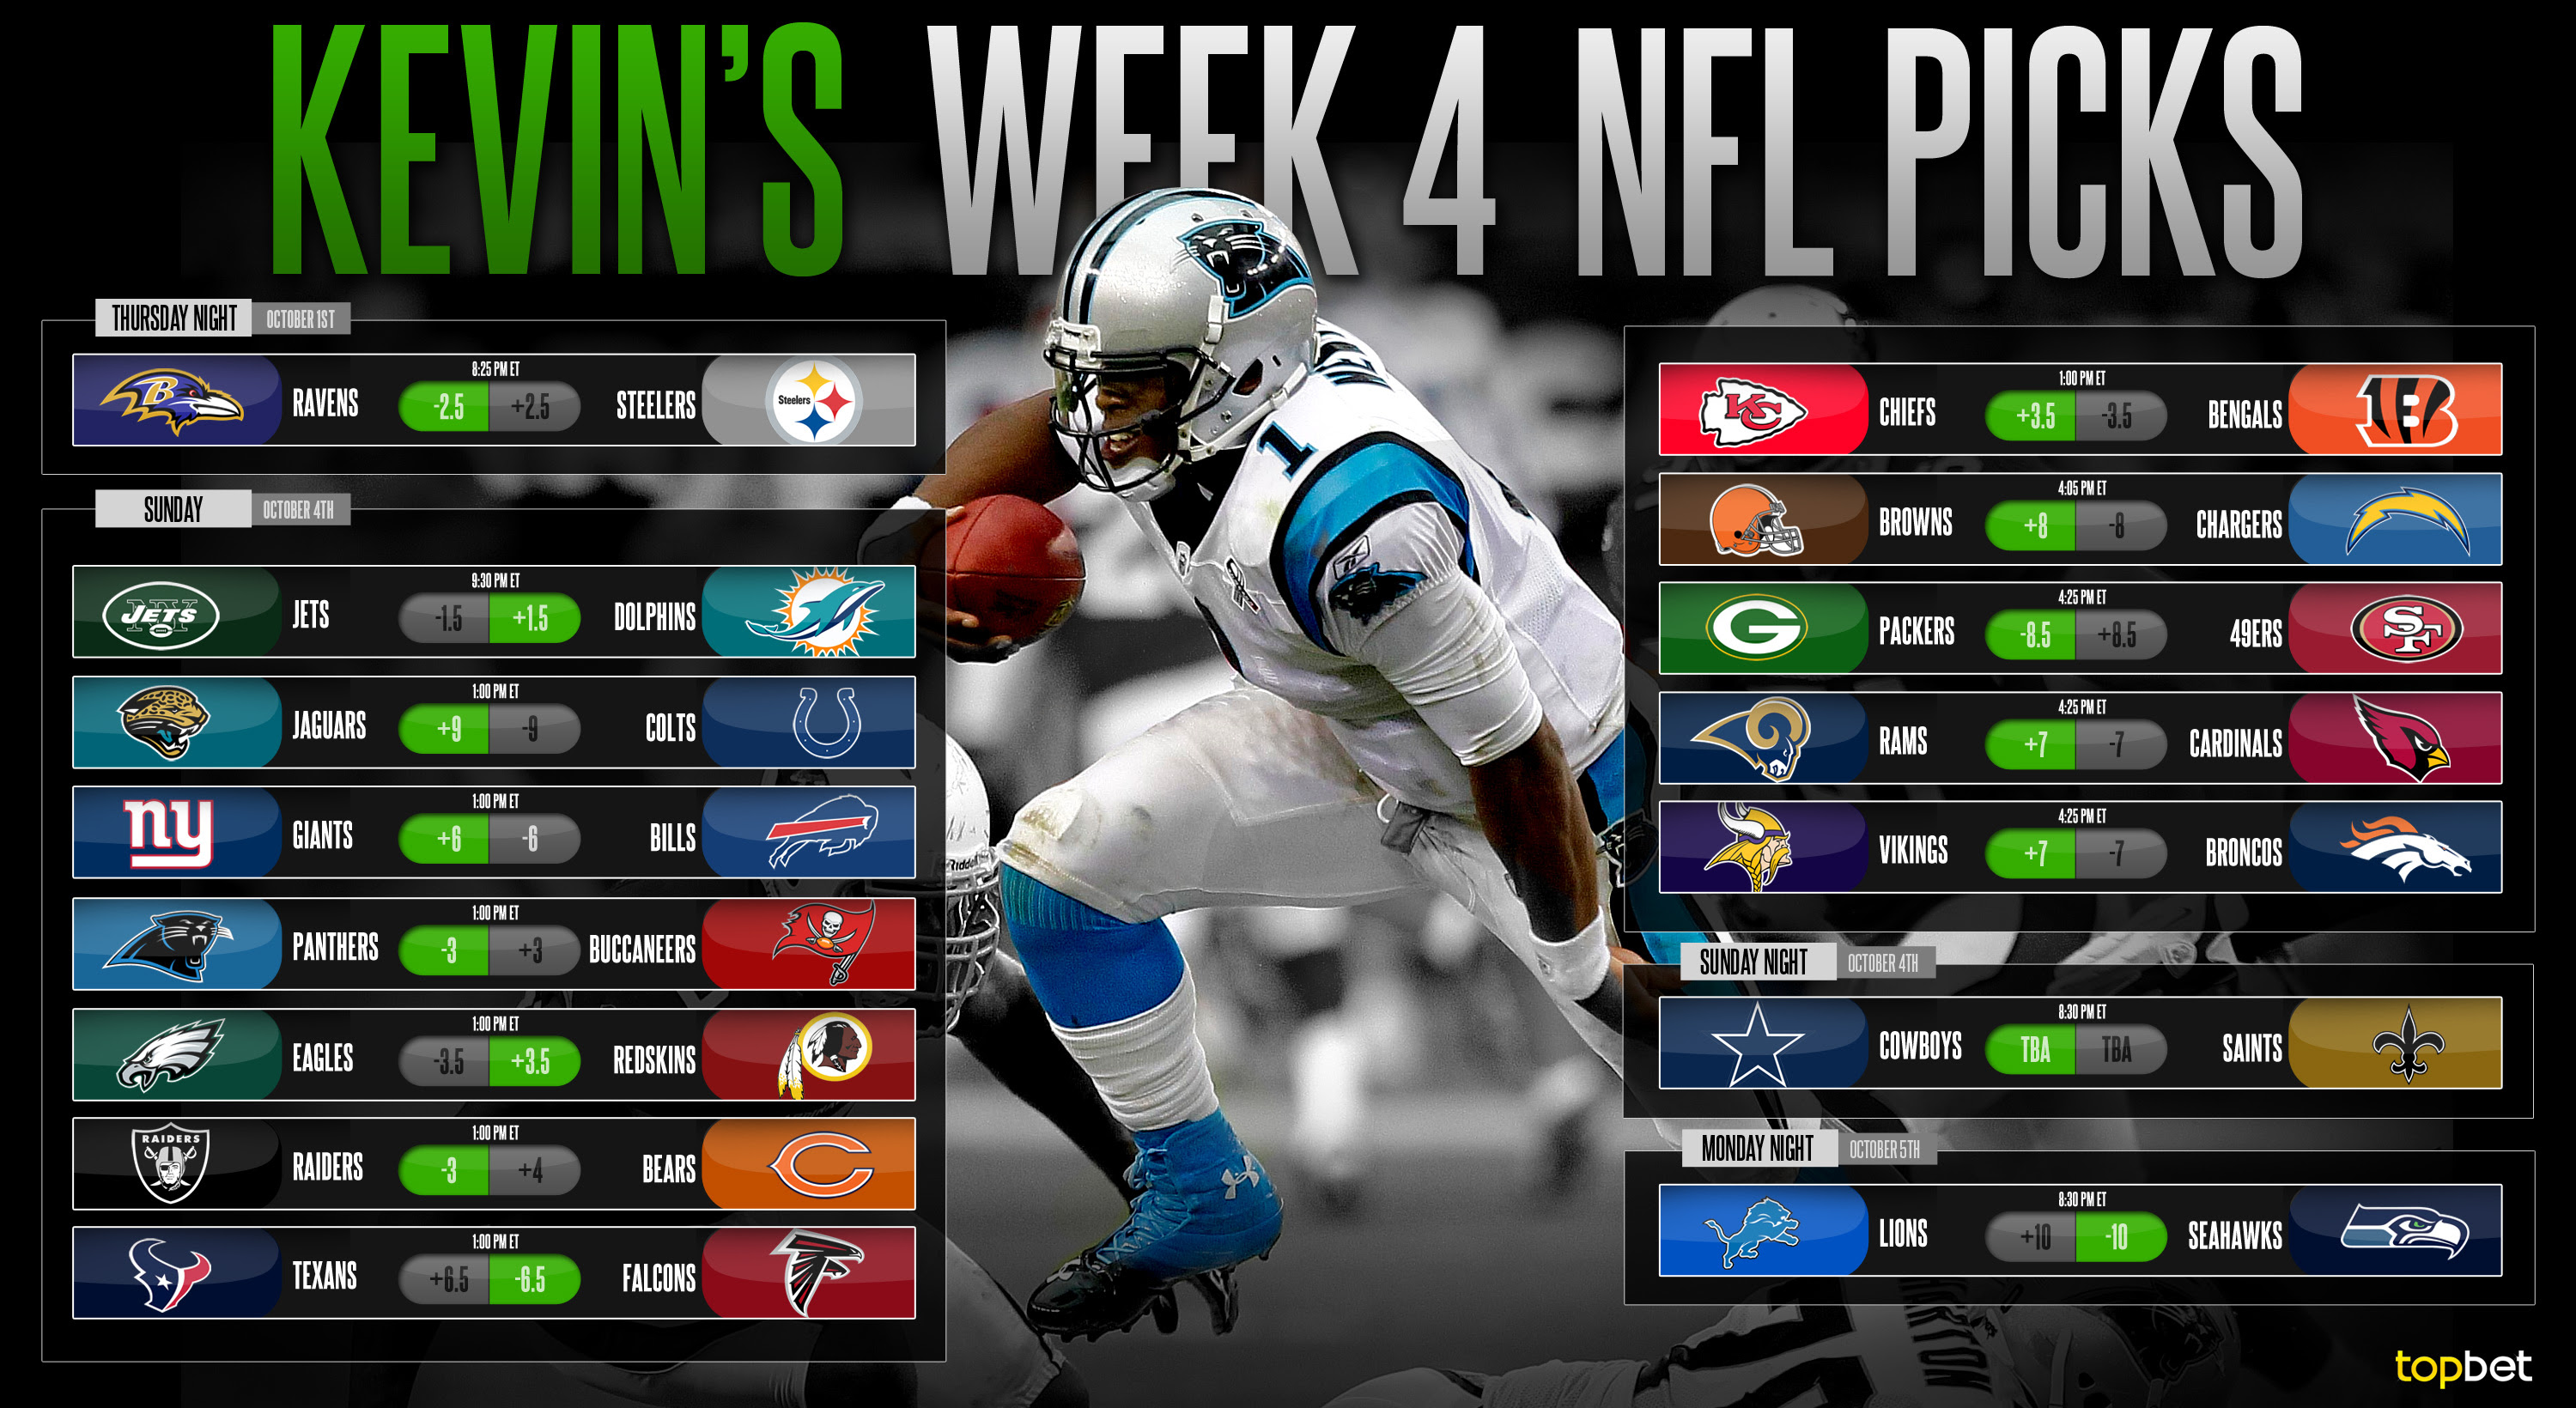 2015 NFL Week 4 Predictions, Picks and Preview